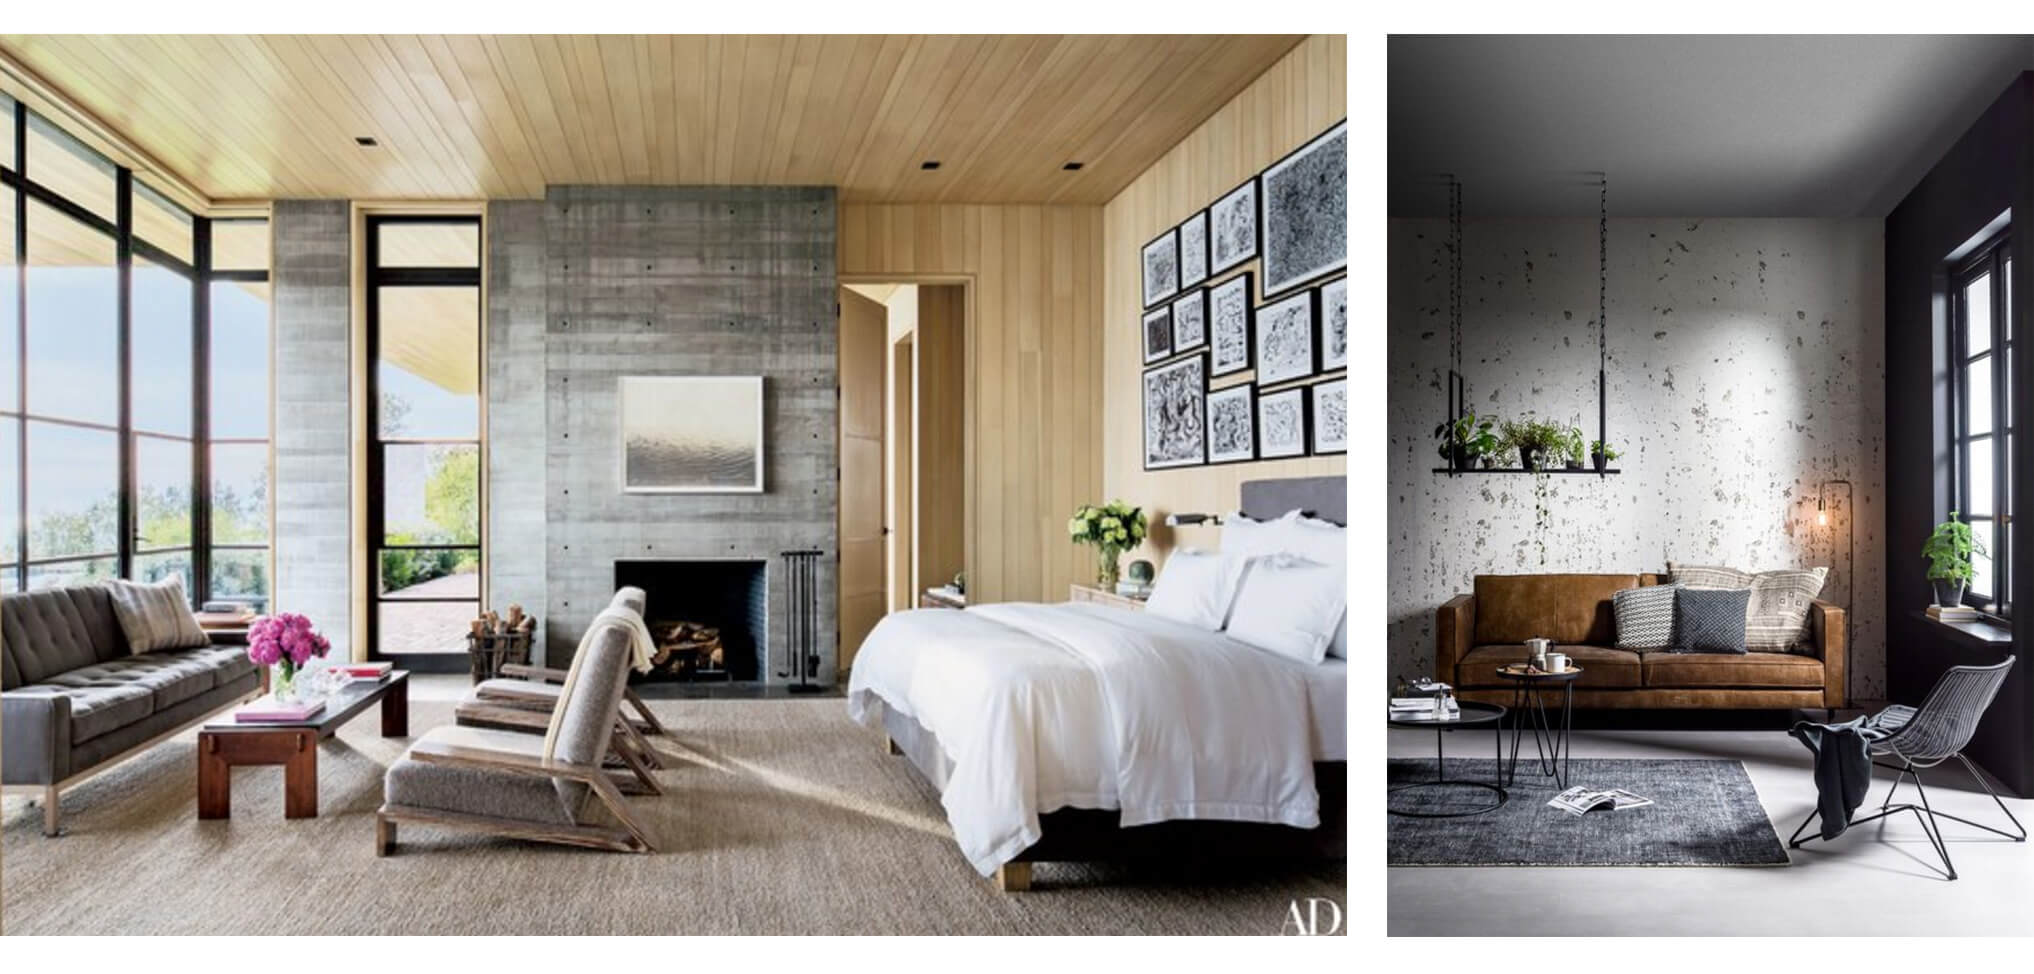 While the styles may seem similar and are often confused - Contemporary vs modern design ...